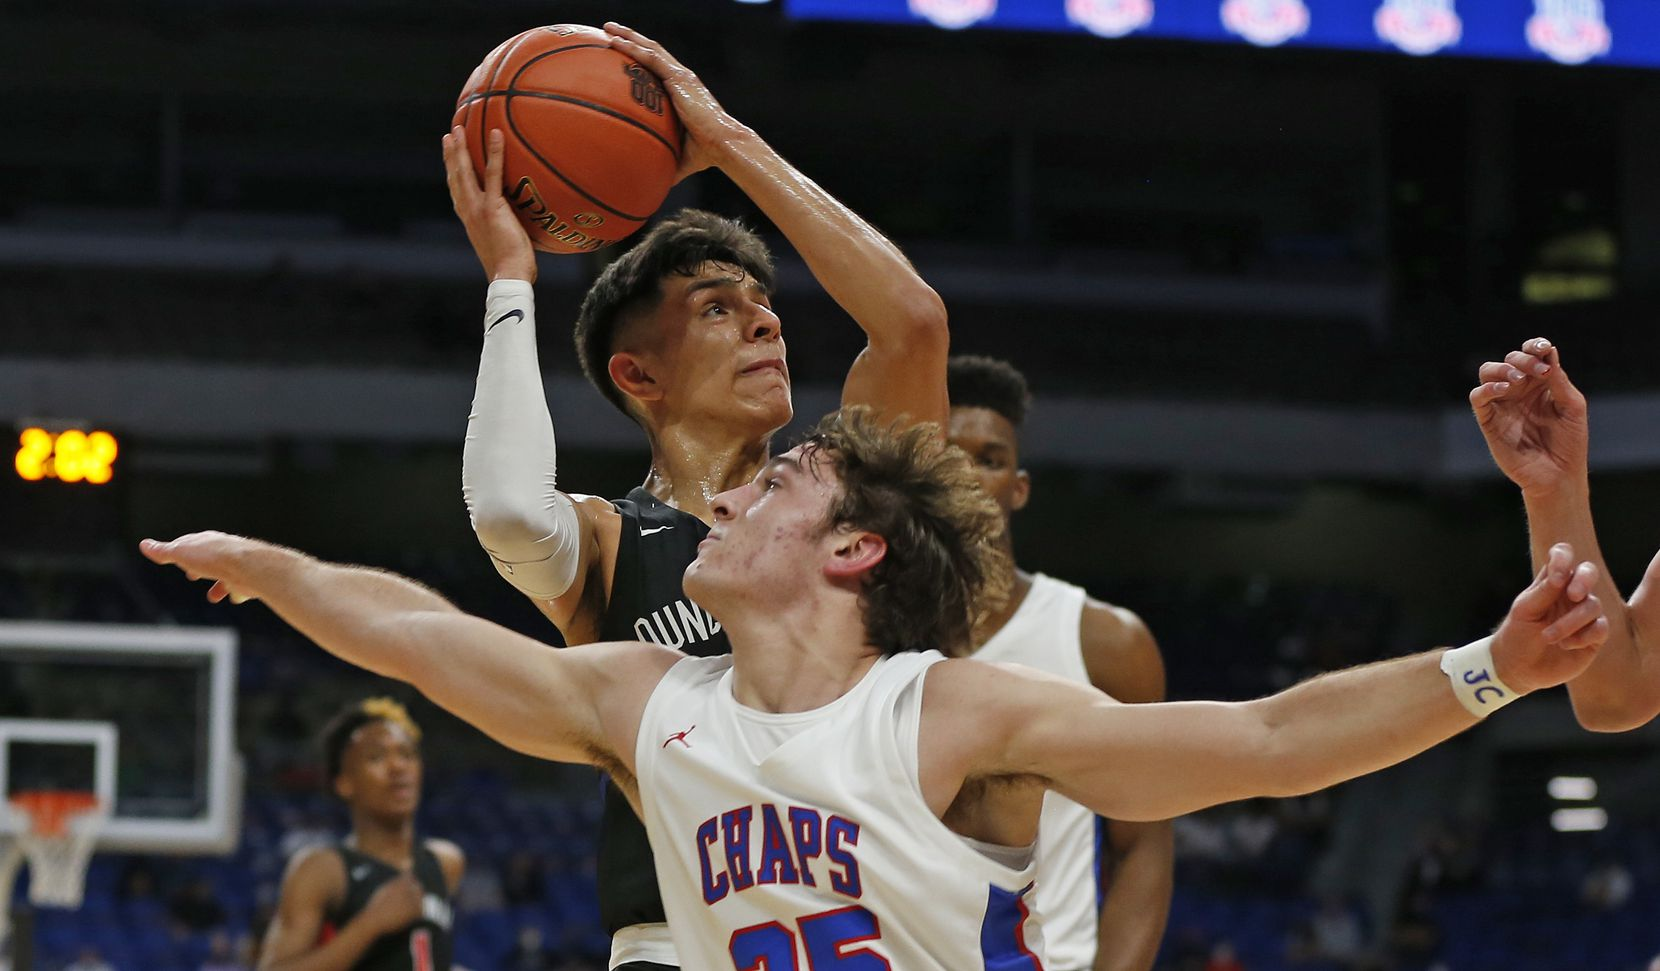 Duncanville Juan Reyna #20 drives by Westlake Eain Mowat #25. UIL boys Class 6A basketball state championship game between Duncanville and Austin Westlake on Saturday, March 13, 2021 at the Alamodome.